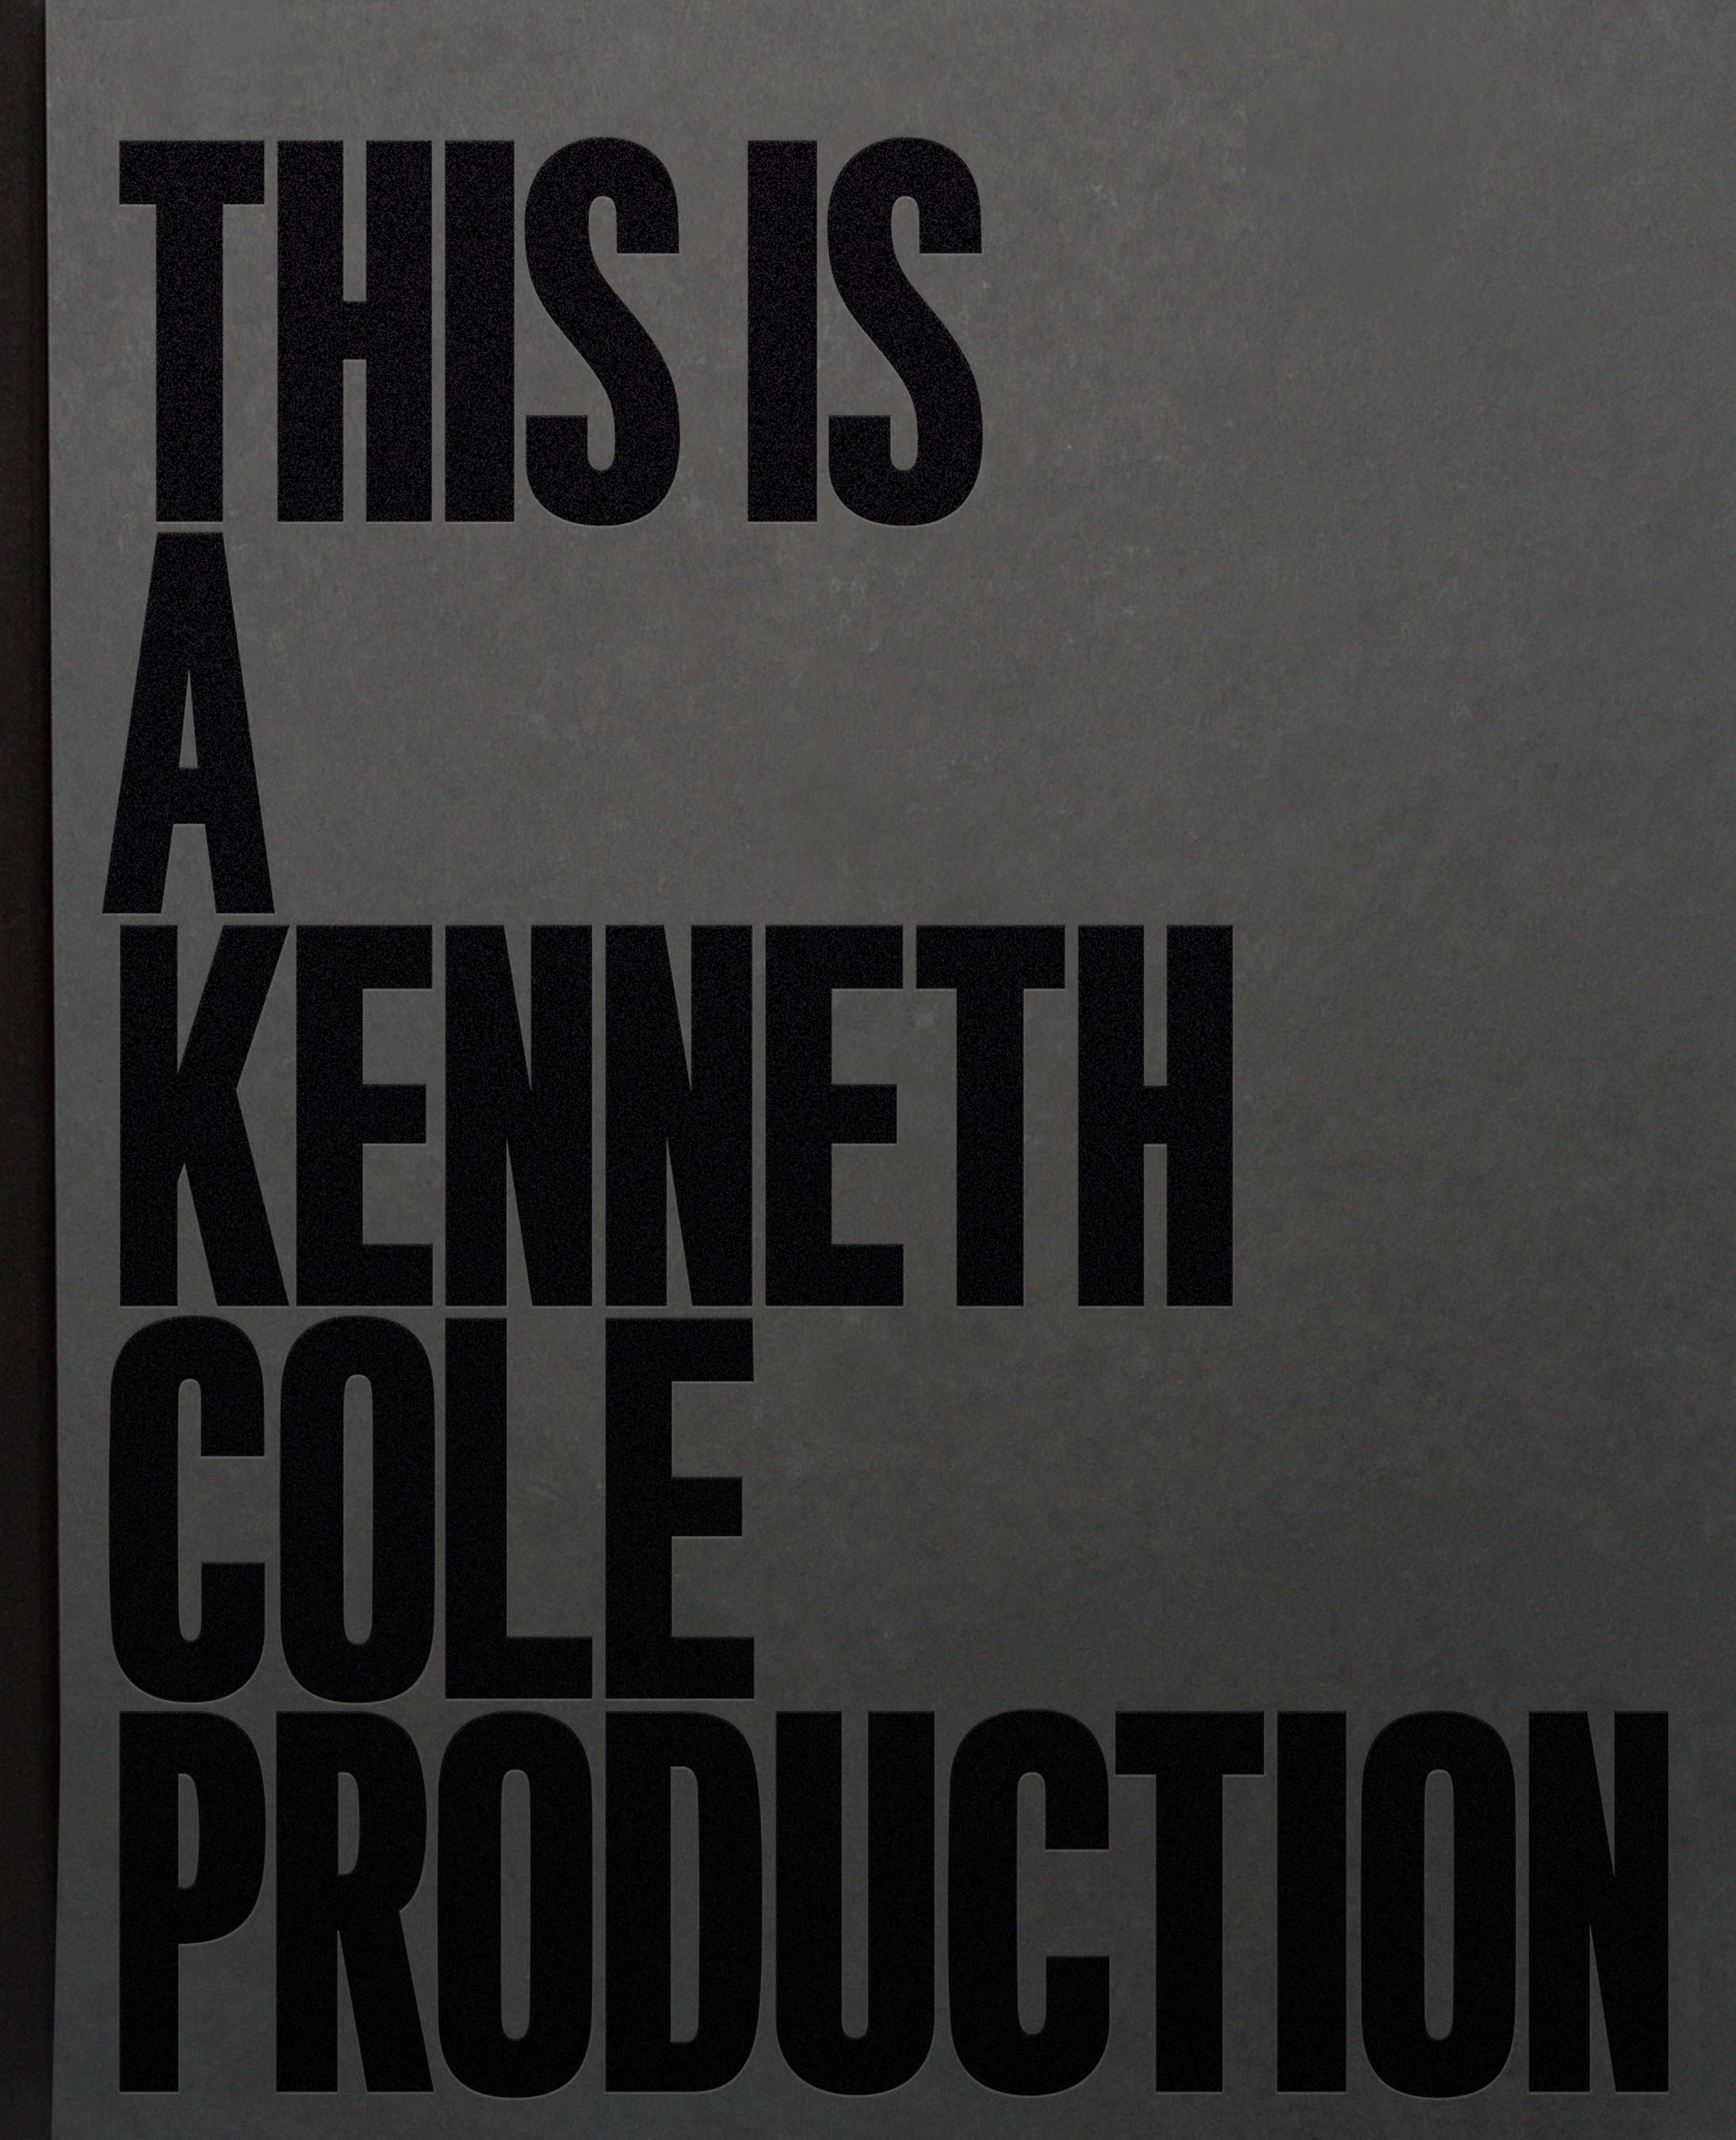 Kenneth Cole Presents New Coffee Table Book